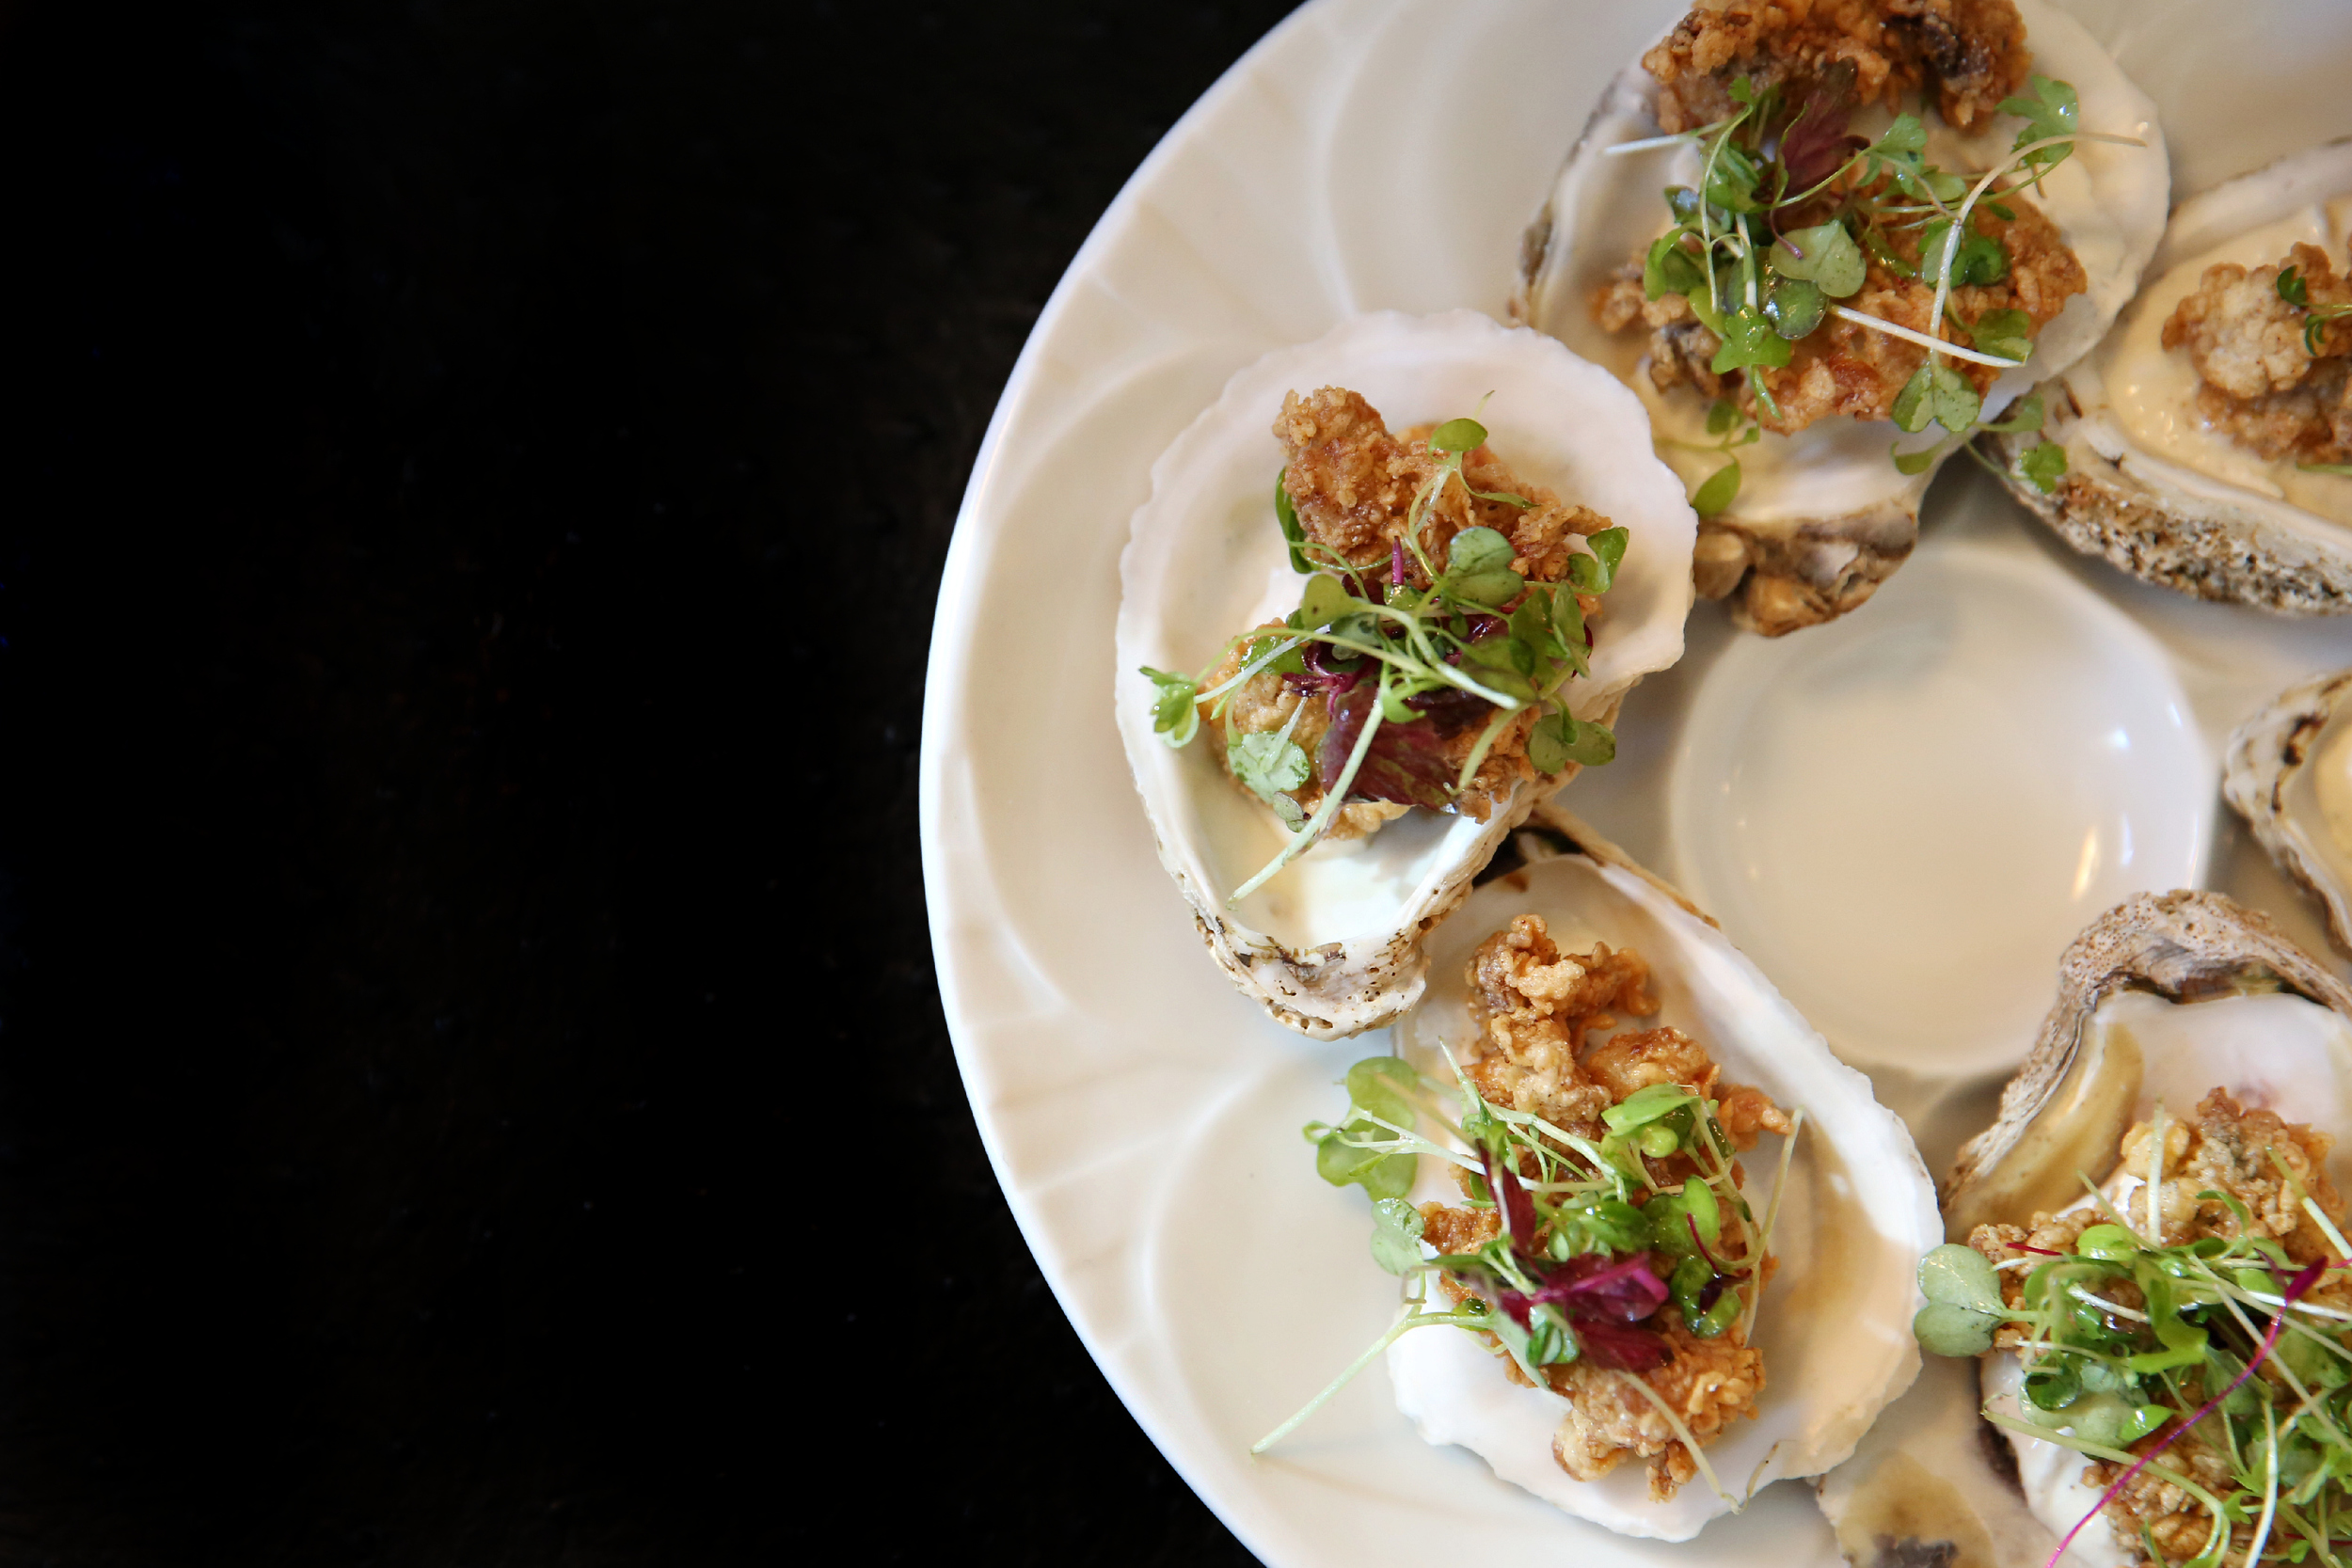 Cornmeal crusted oysters